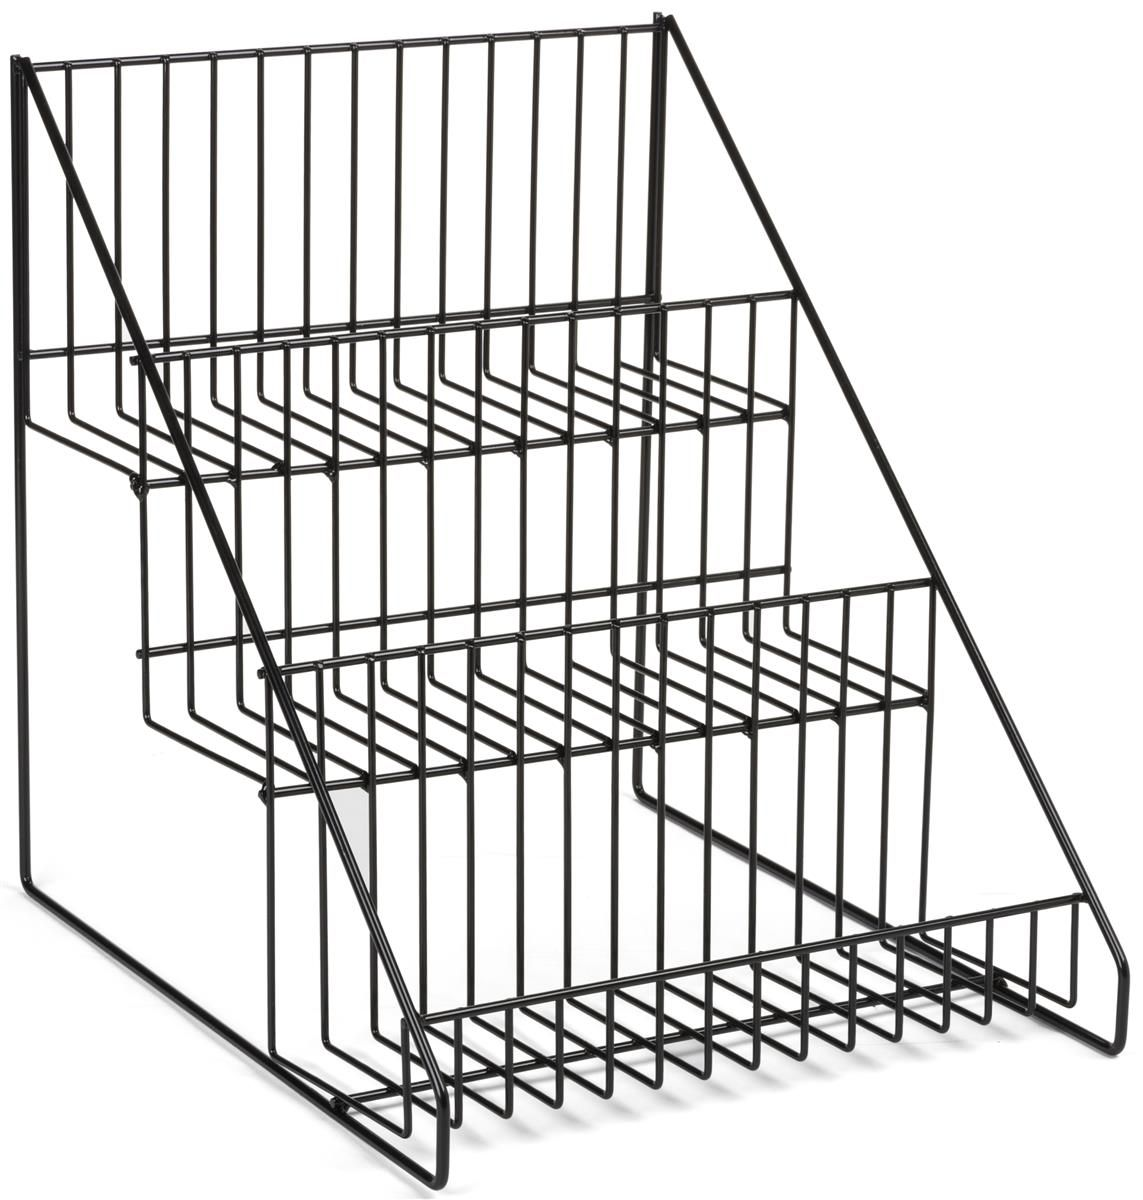 3 Tiered Wire Rack Display Tabletop 12 W Open Shelves Black